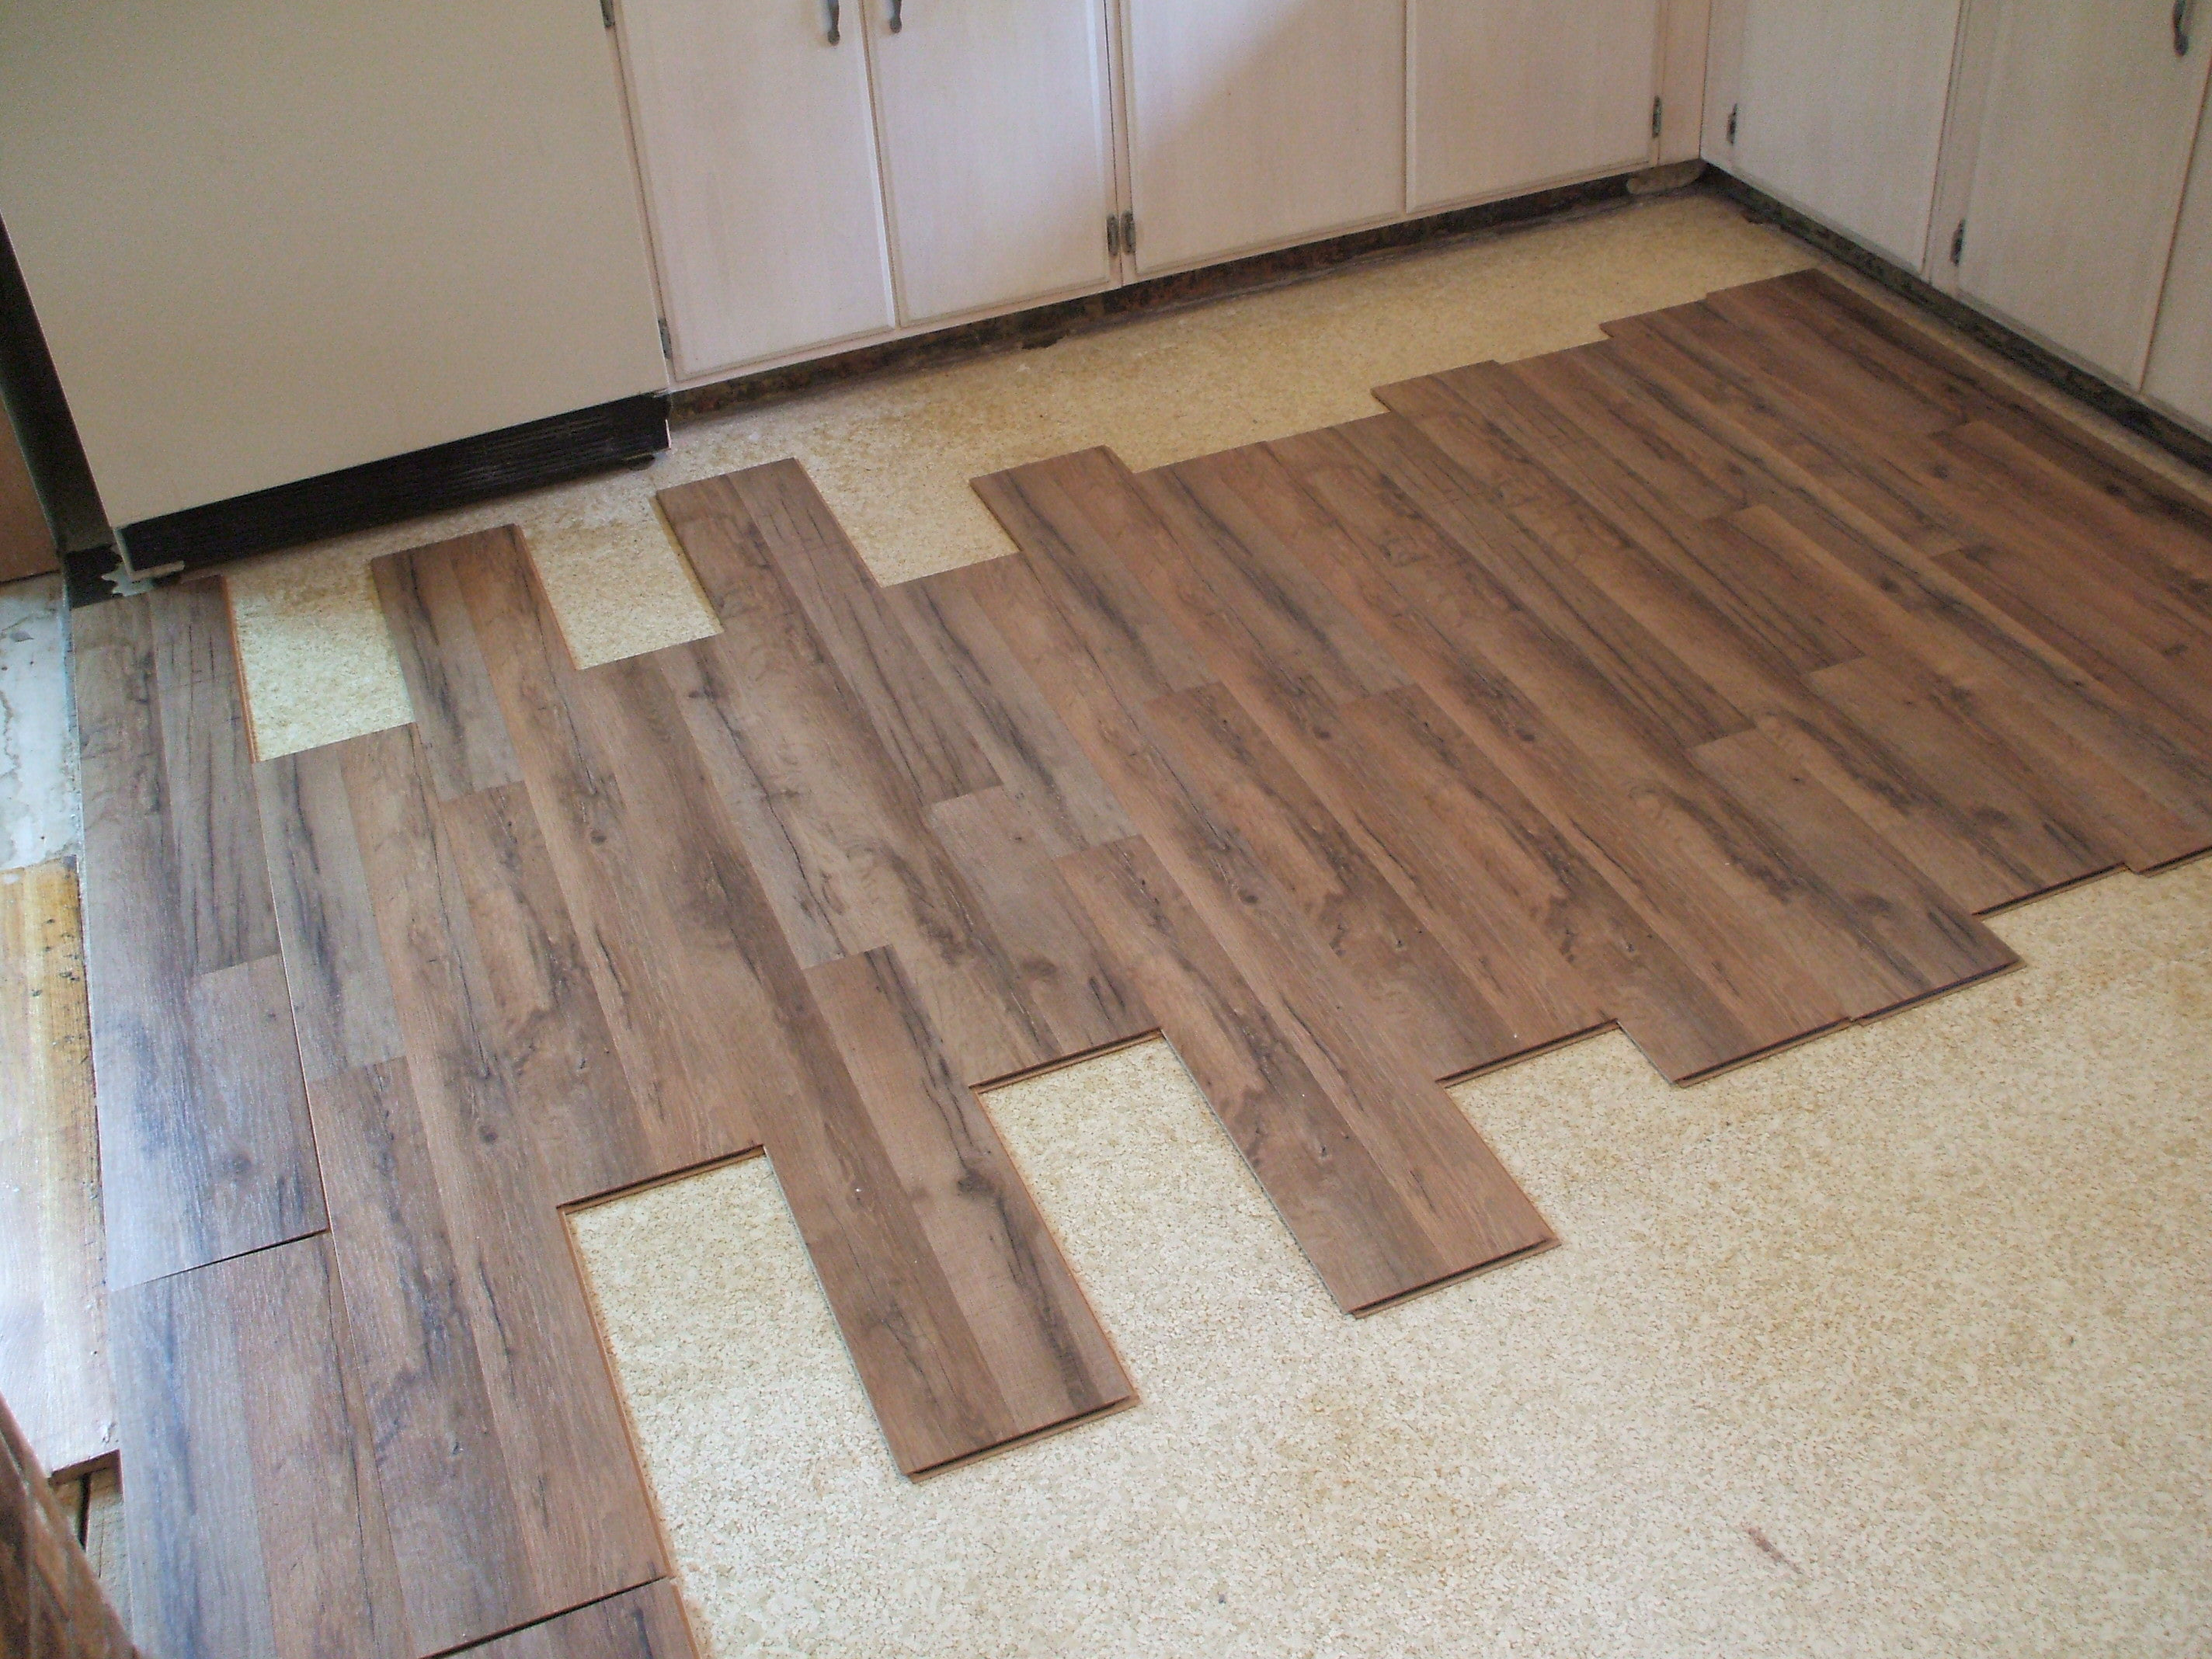 Flooring Options For Your Rental Home Which Is Best - Cost of replacing tile floor with hardwood